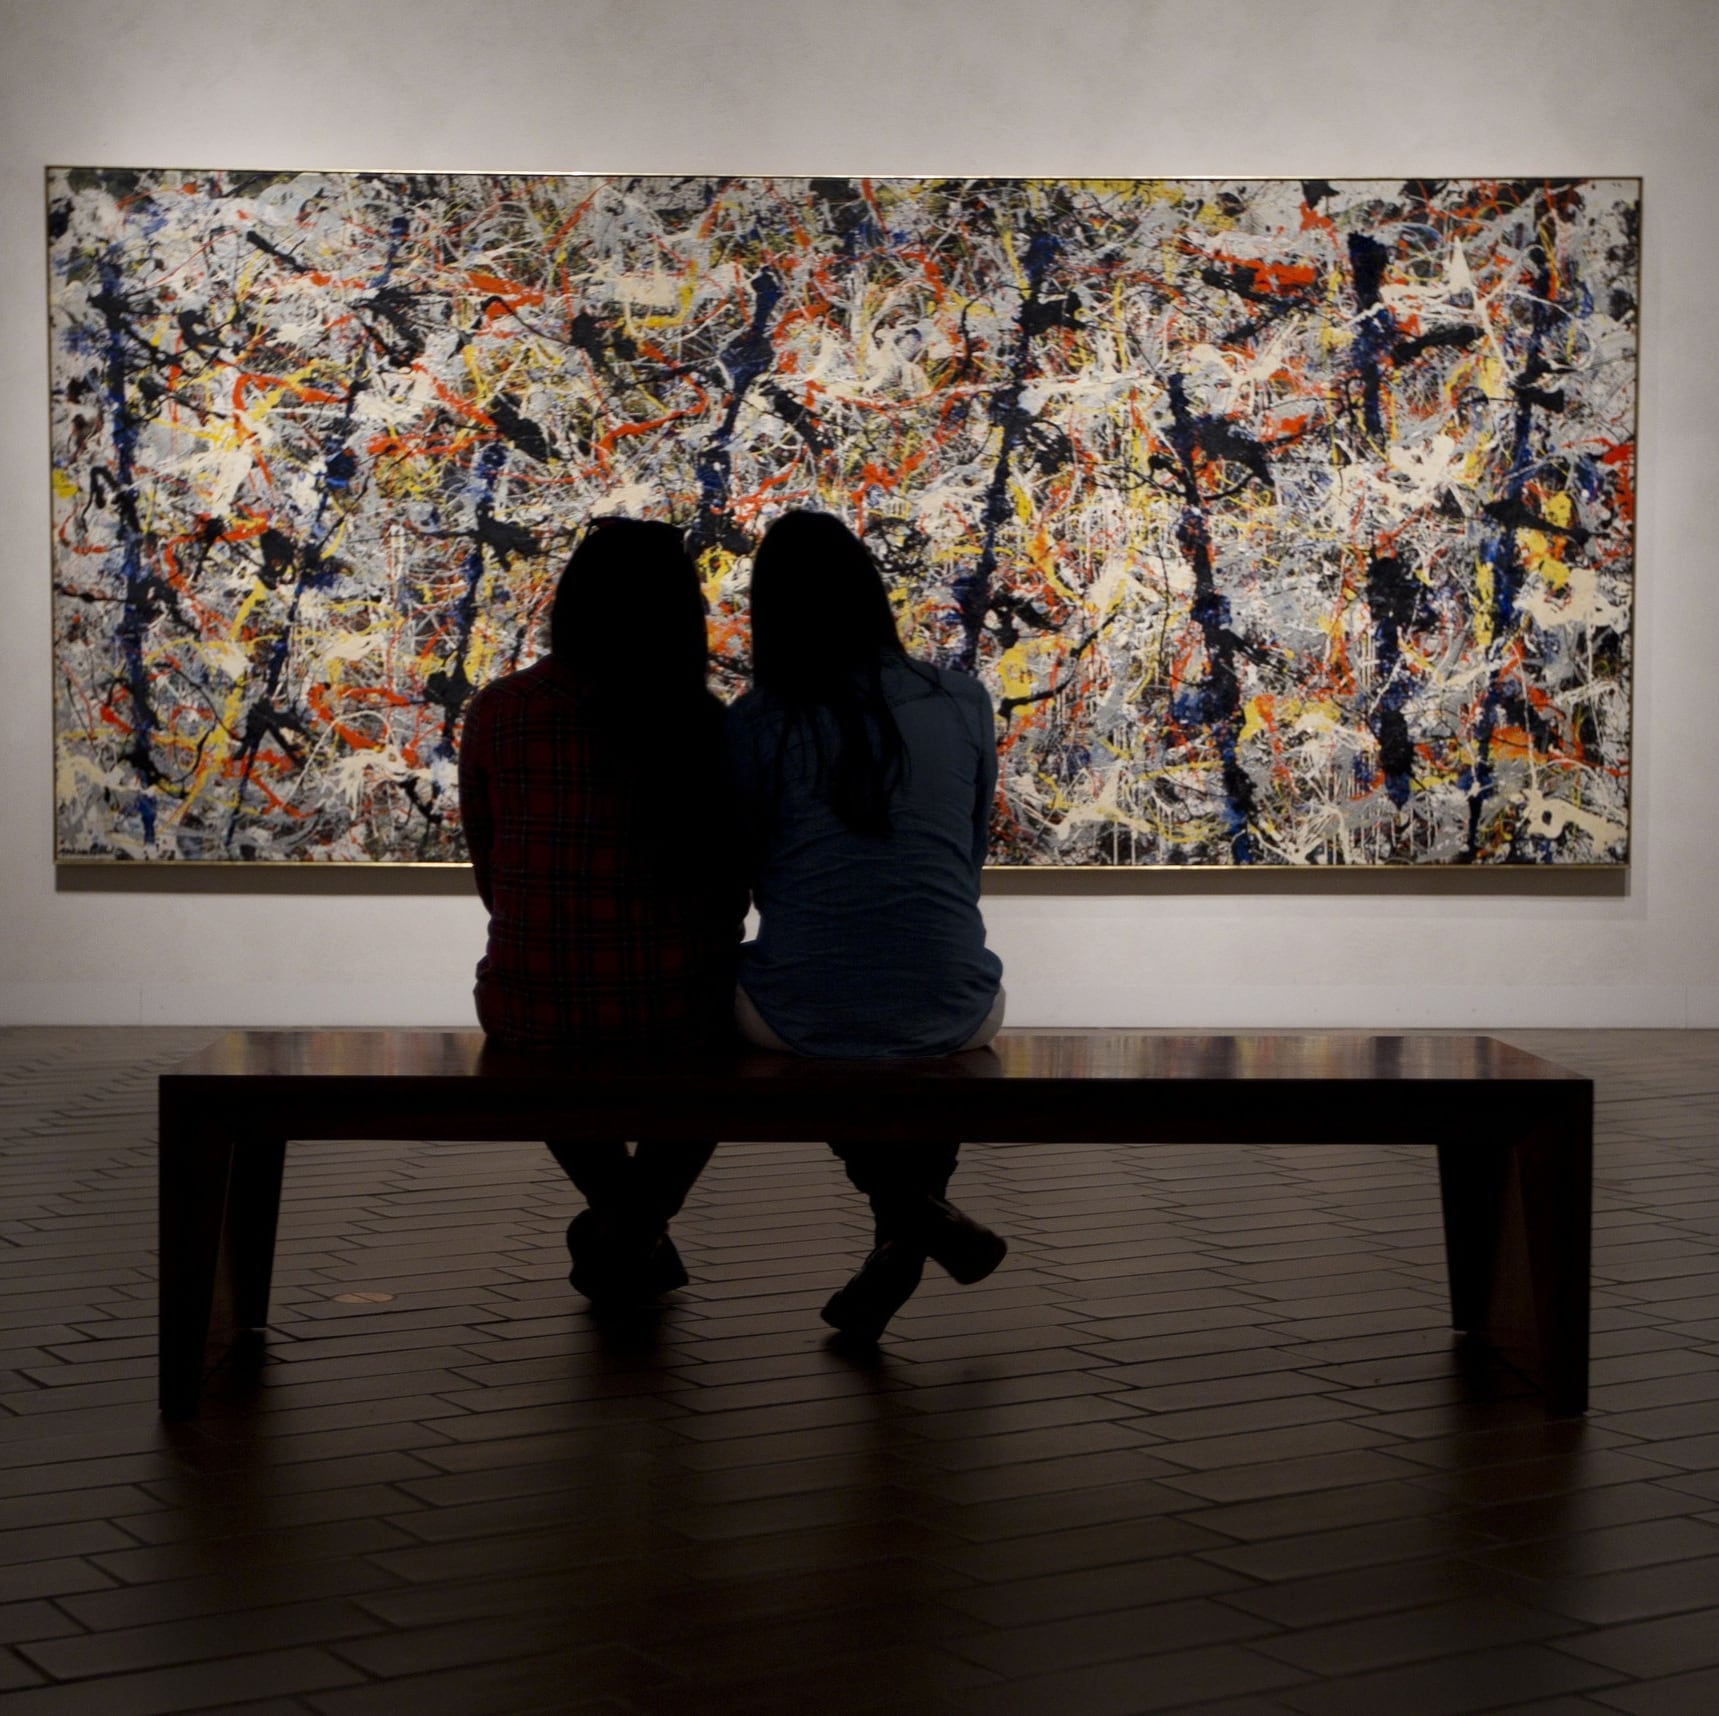 Visitors admire Blue Poles painting at the National Gallery of Australia © VisitCanberra